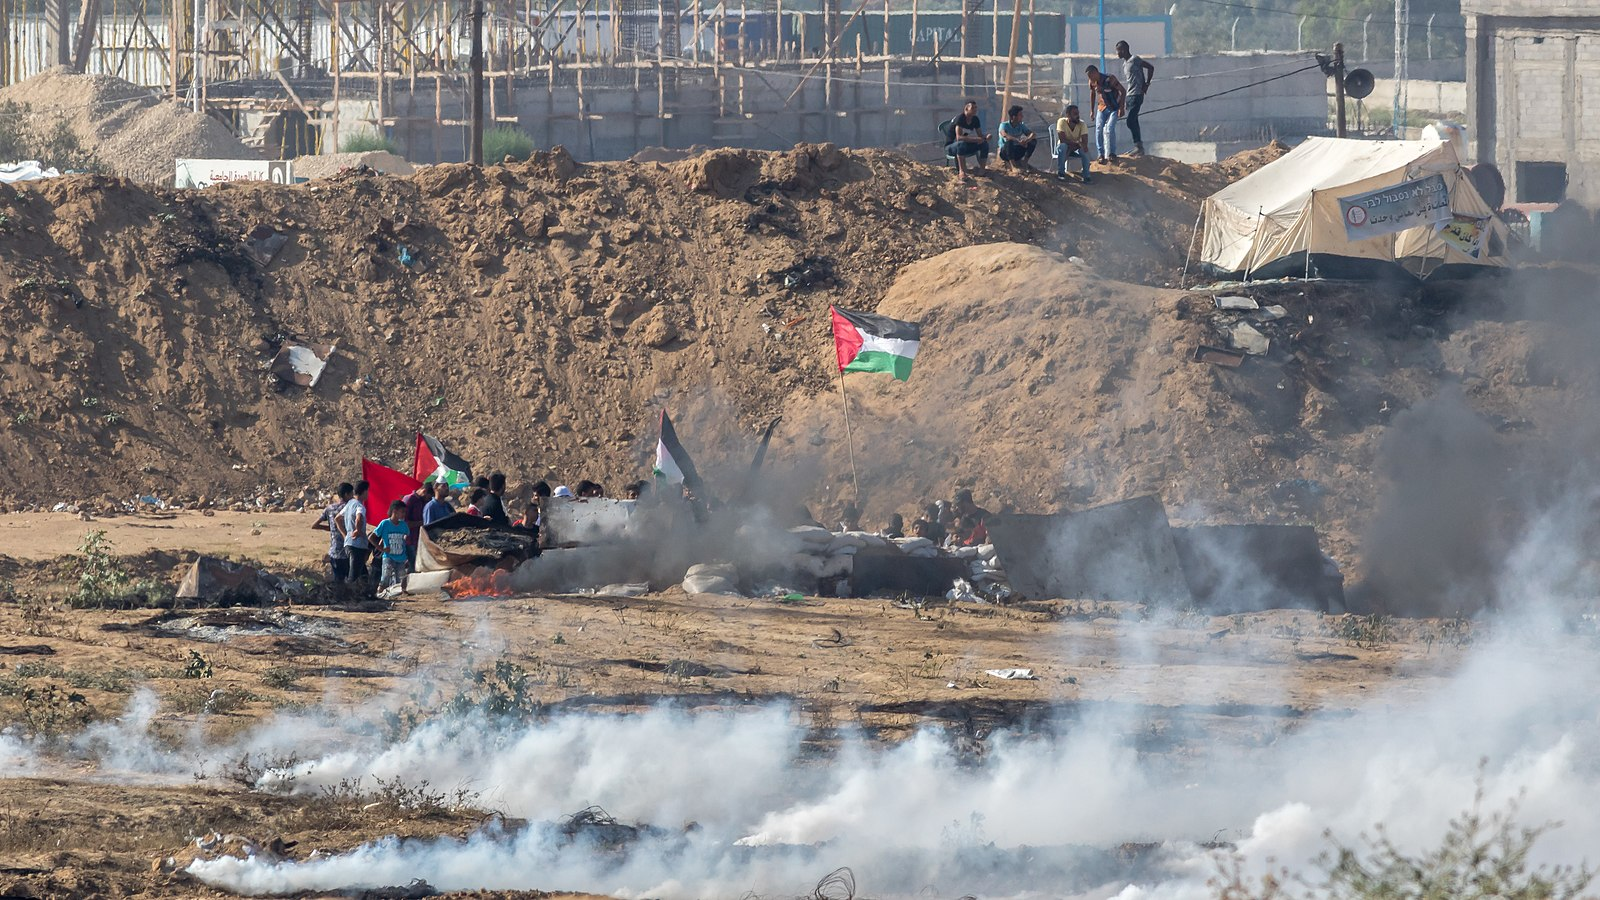 Gazans in the Bureij refugee camp took part in the 2018 Gazan border protests. (Wikimedia Commons)